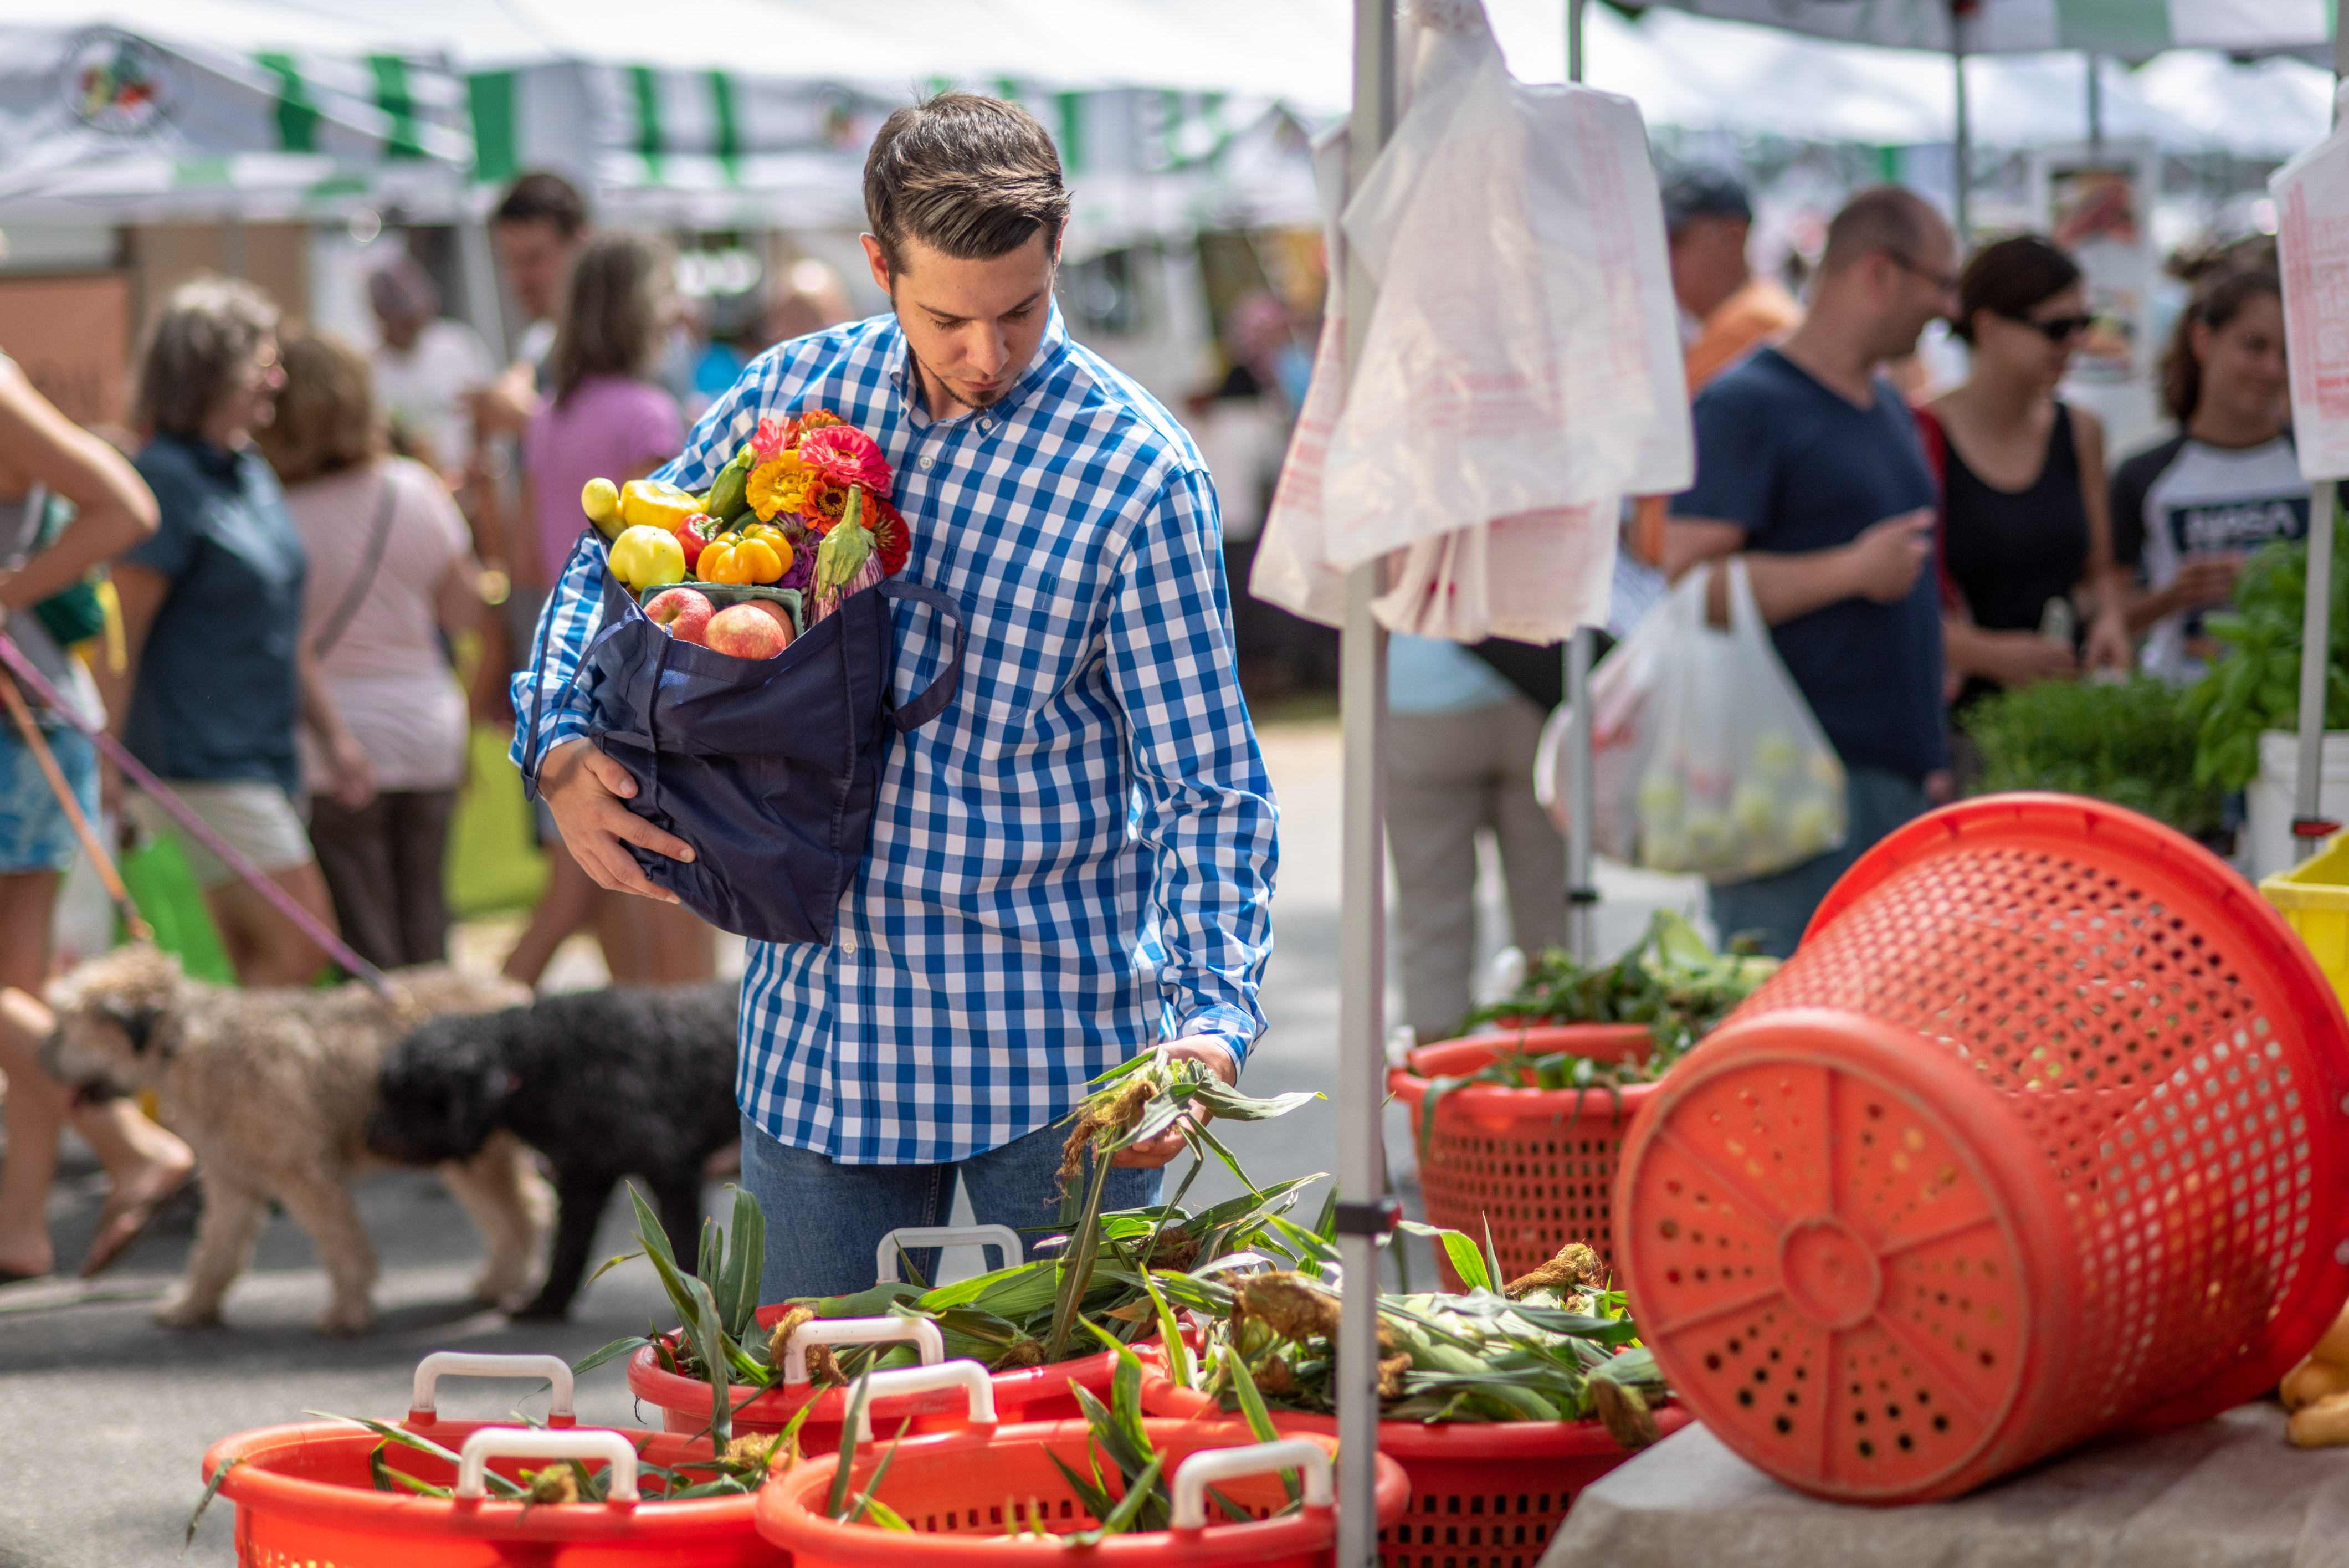 Millennial stopping at vendor booth at a farmers' market with a bag of flowers and produce in arm and picking up an ear of corn in hand.